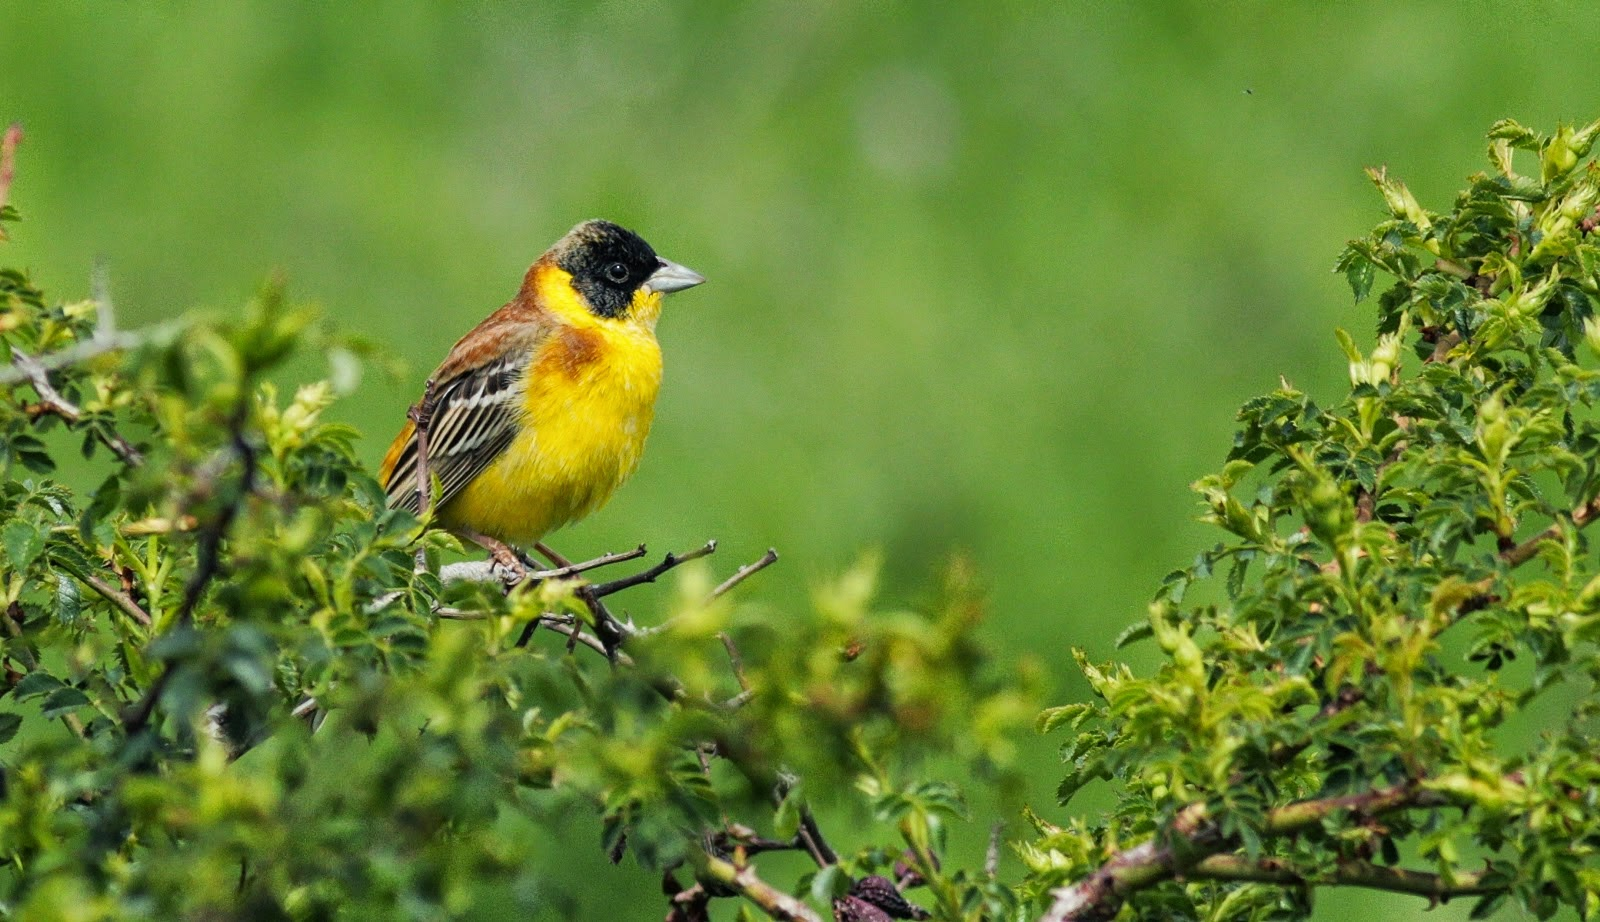 Black-headed Bunting, copyright Iordan Hristov